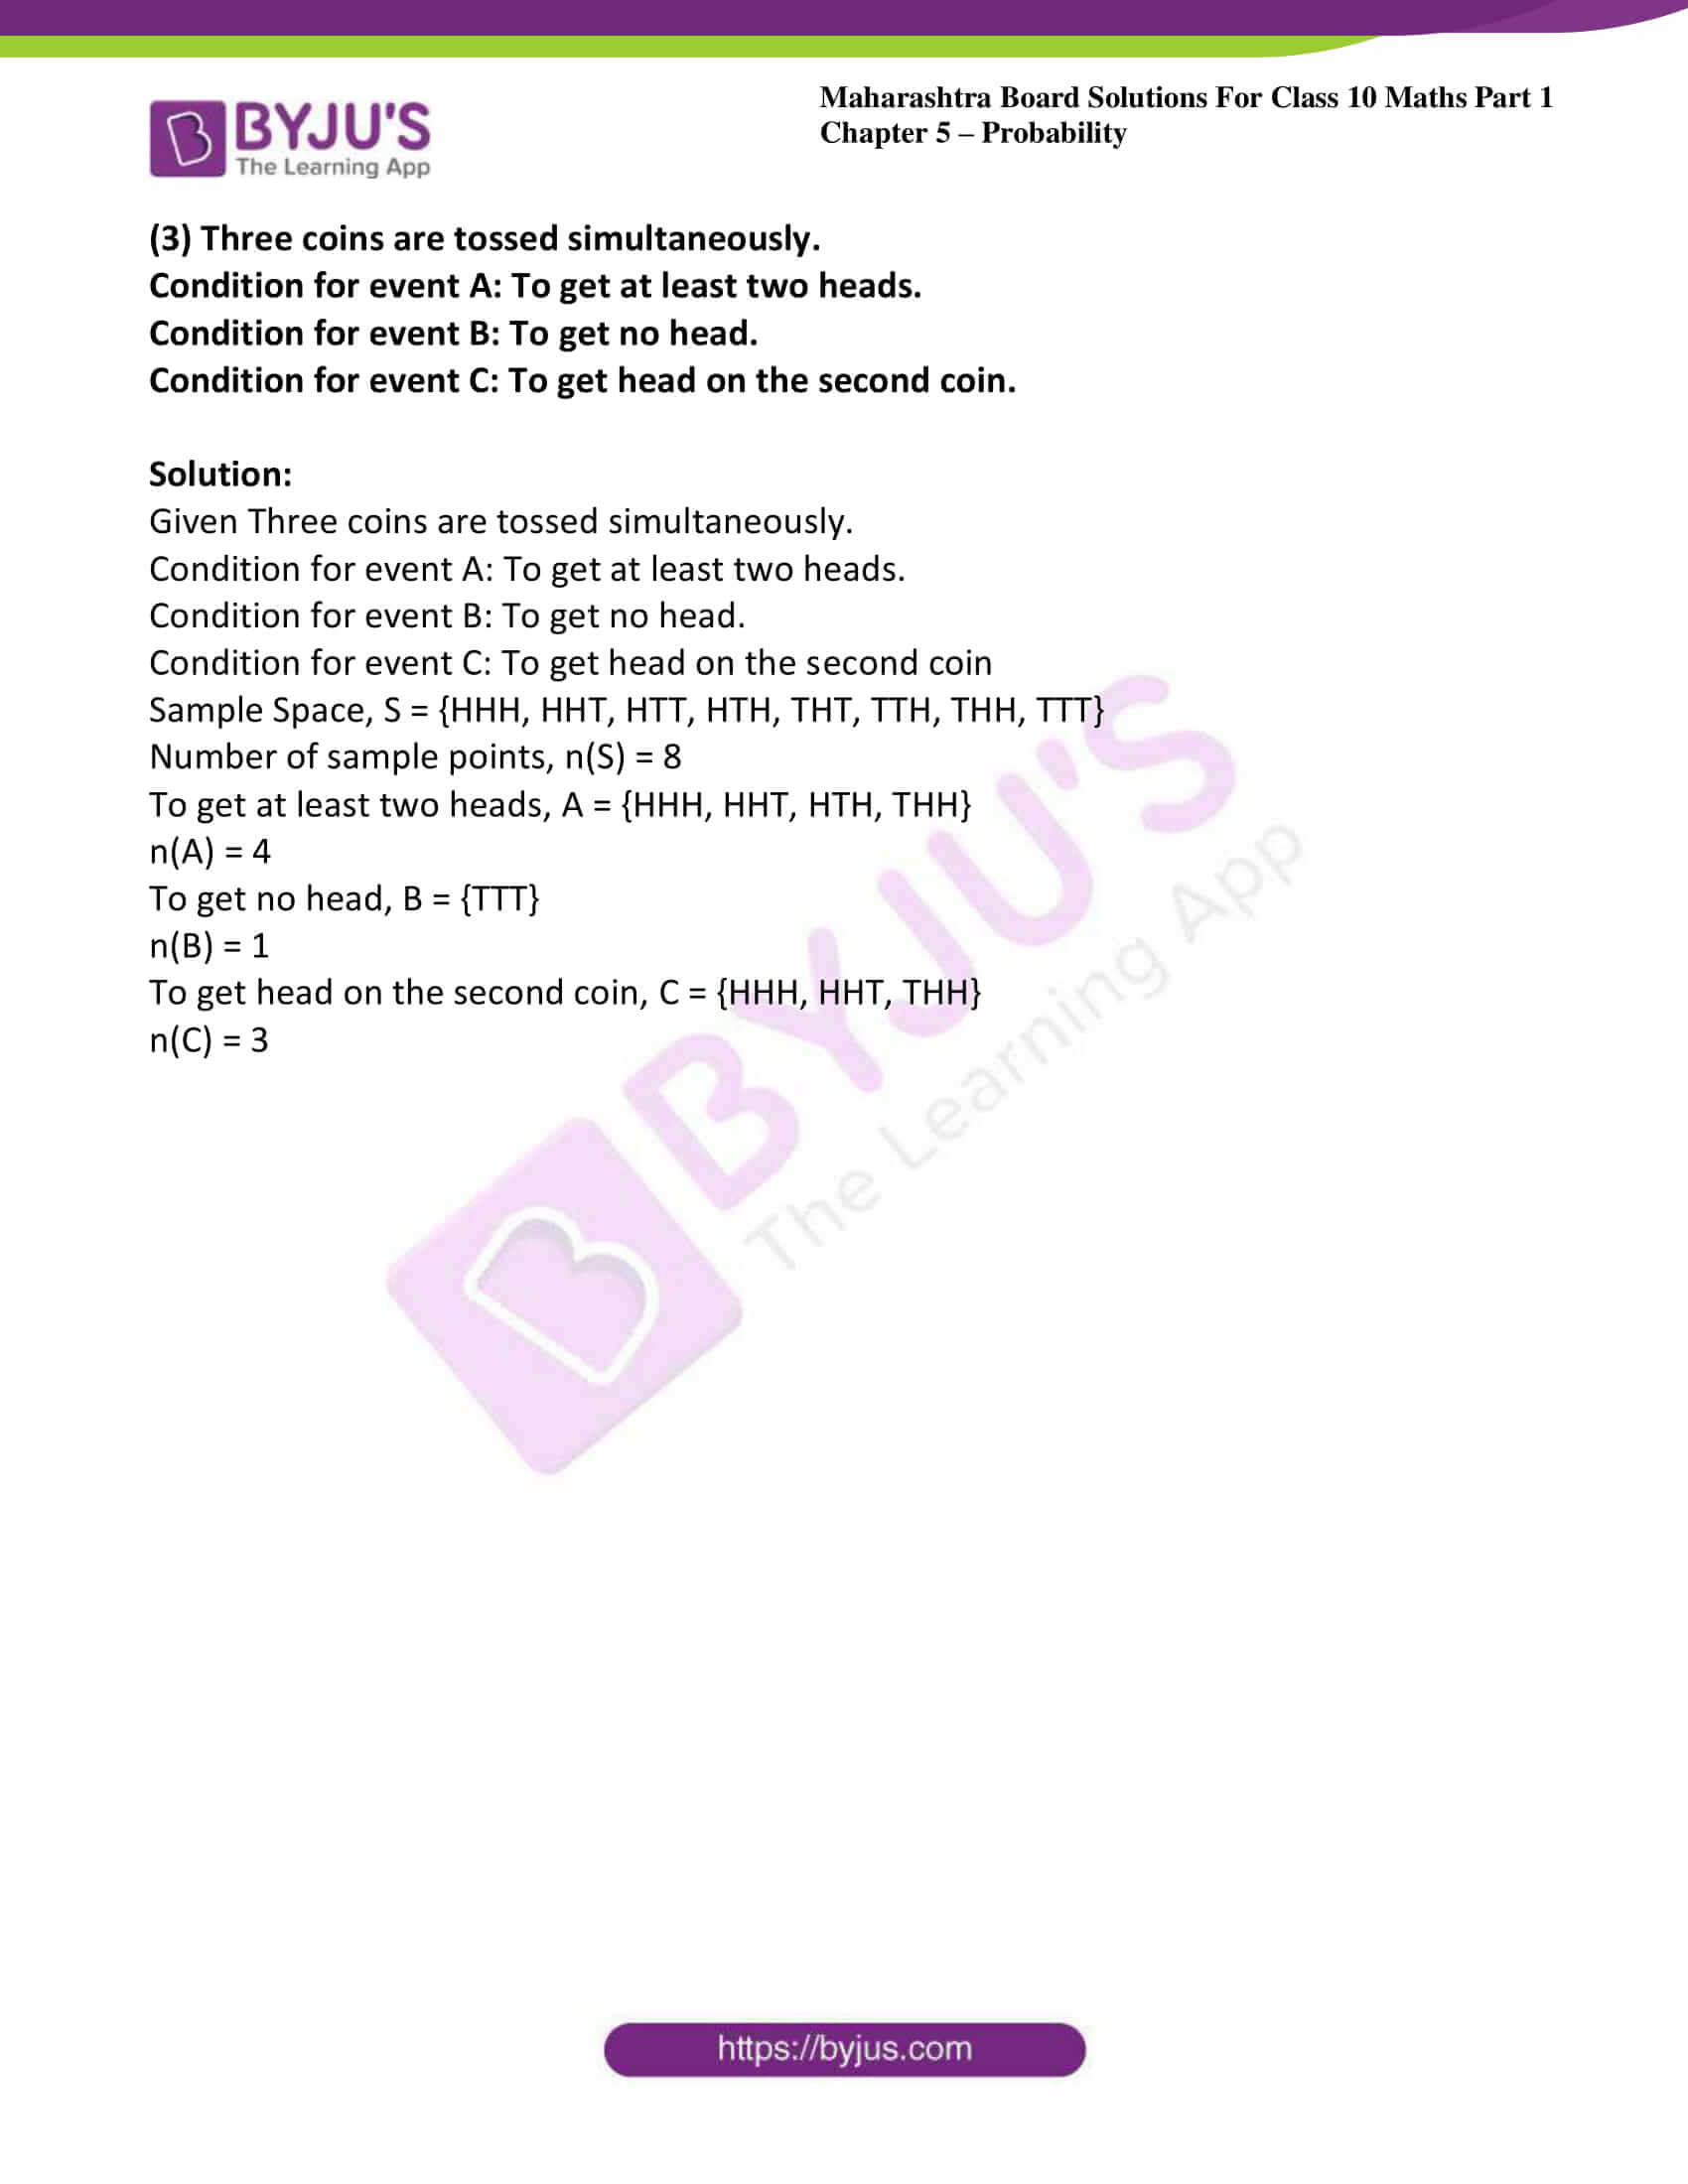 msbshse solutions class 10 maths part 1 chapter 5 04